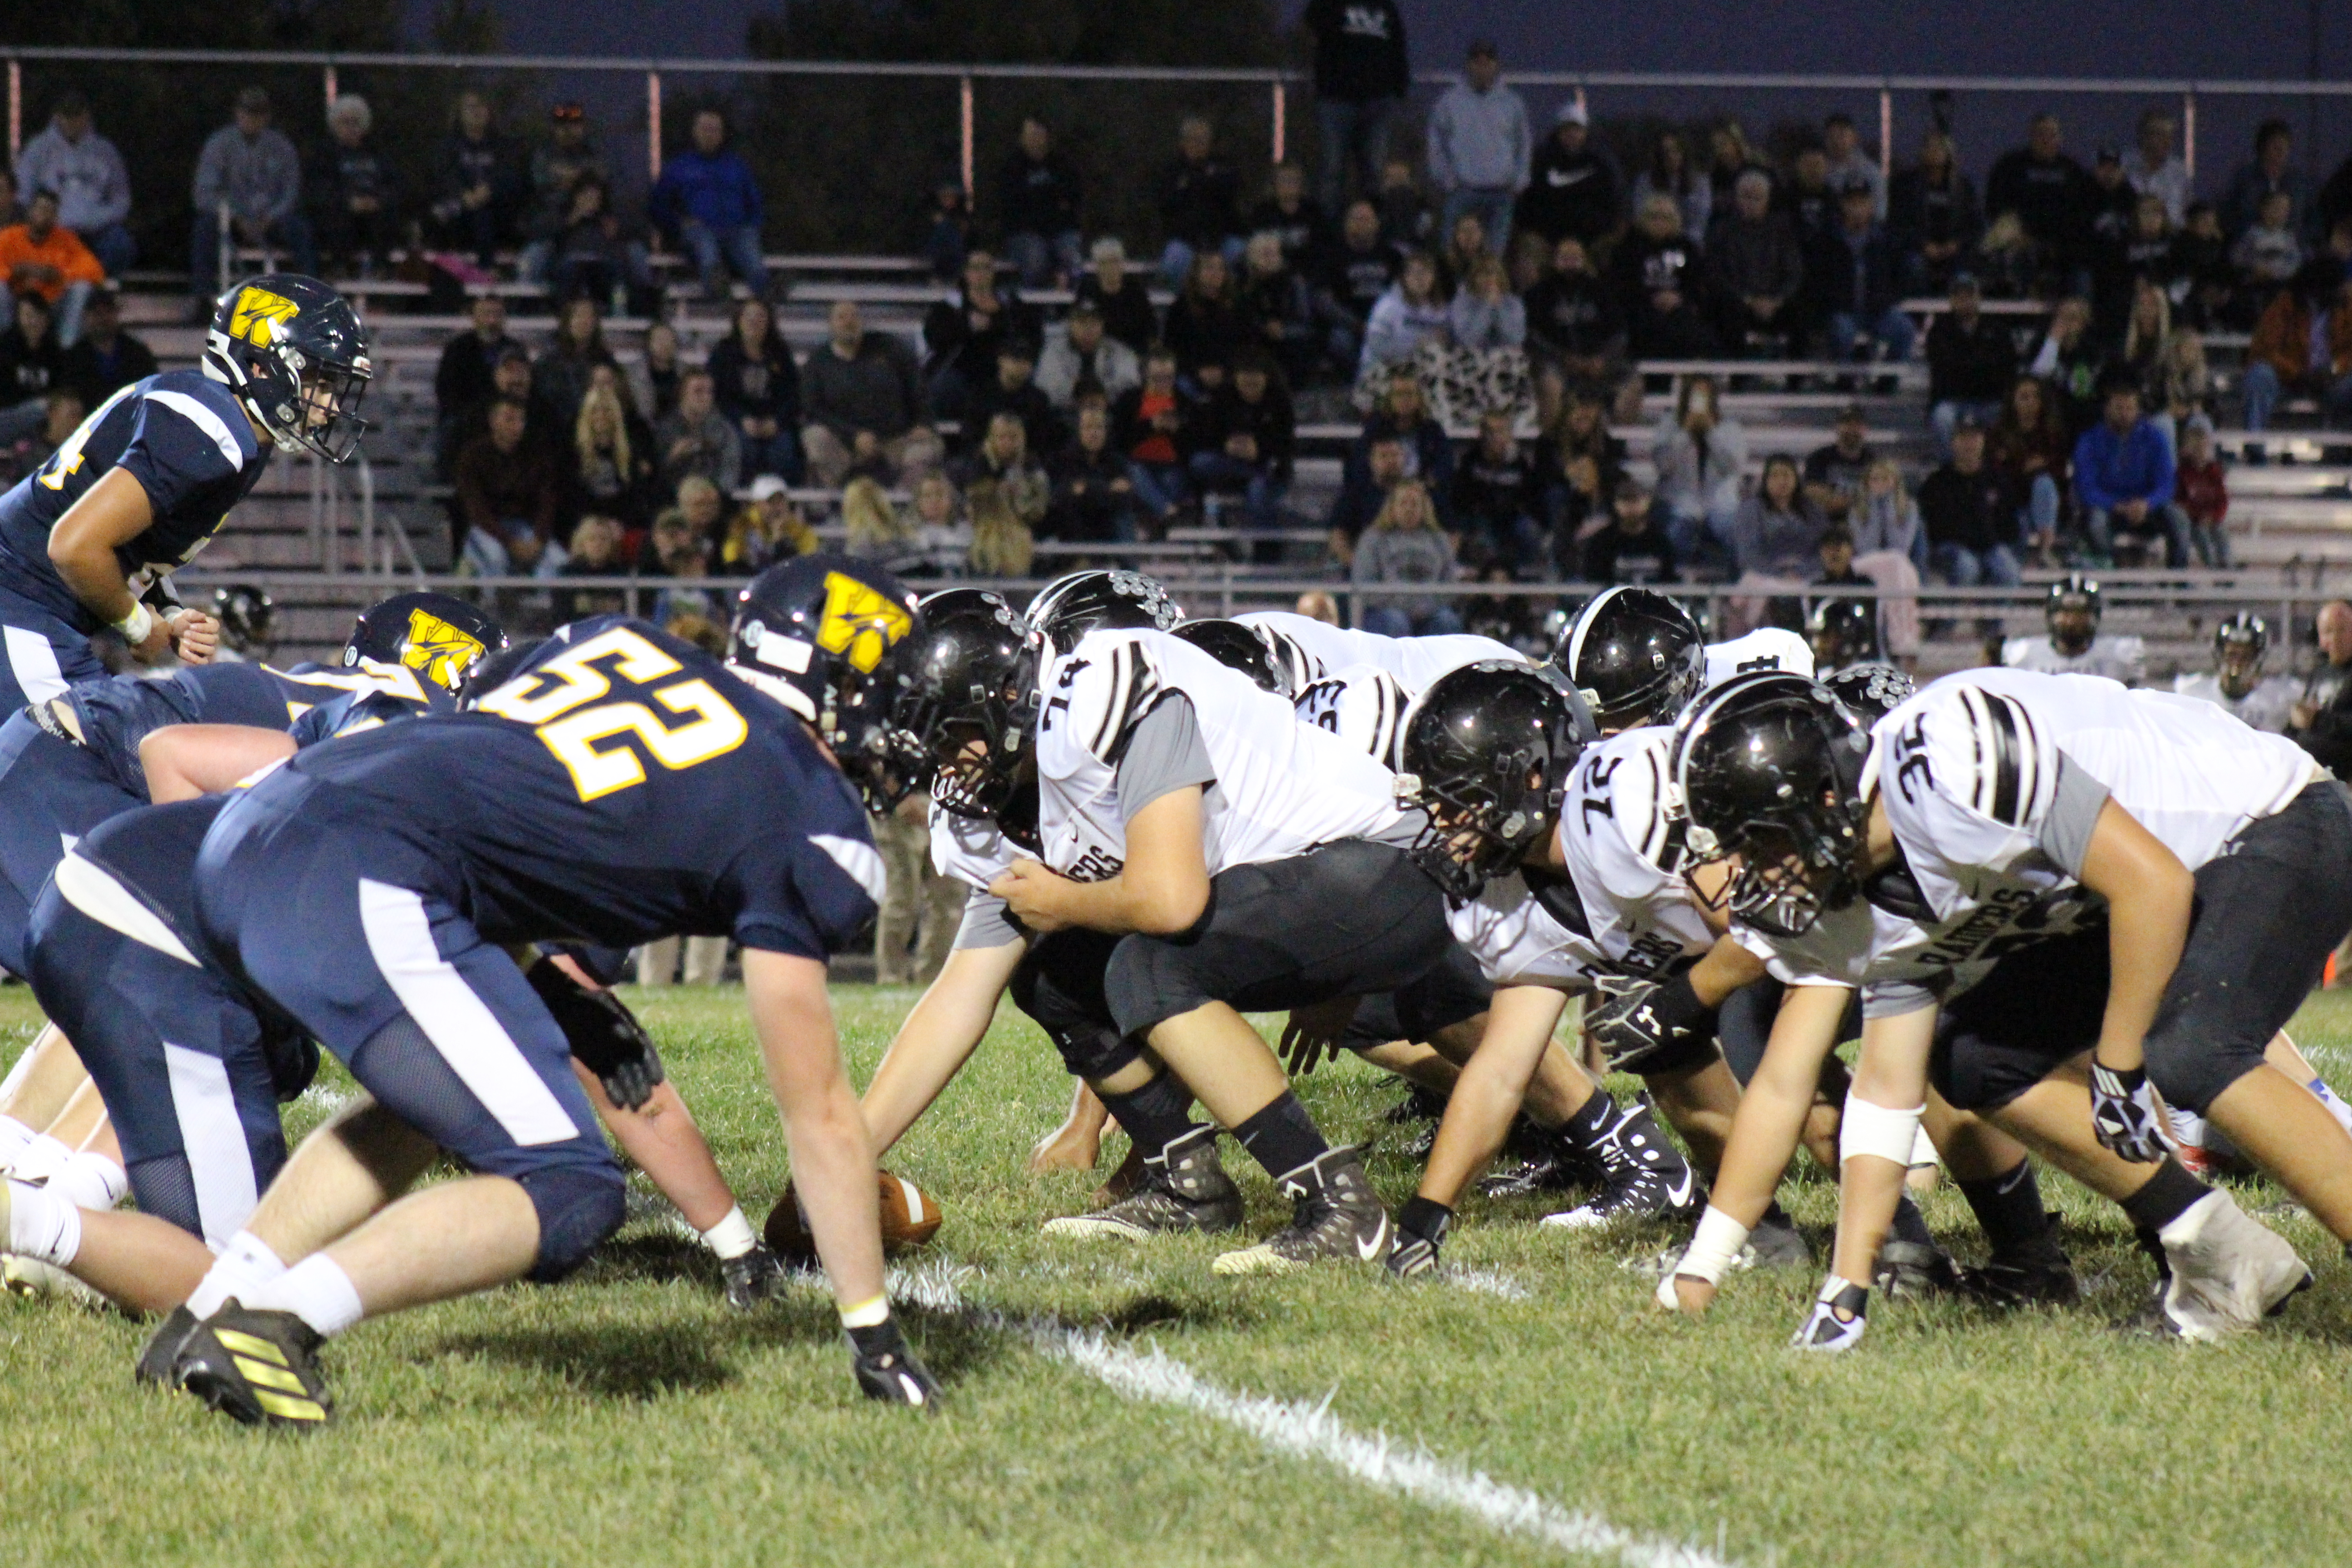 The Wellston Golden Rockets and the River Valley Raiders lineup against each other on Oct. 5, 2015